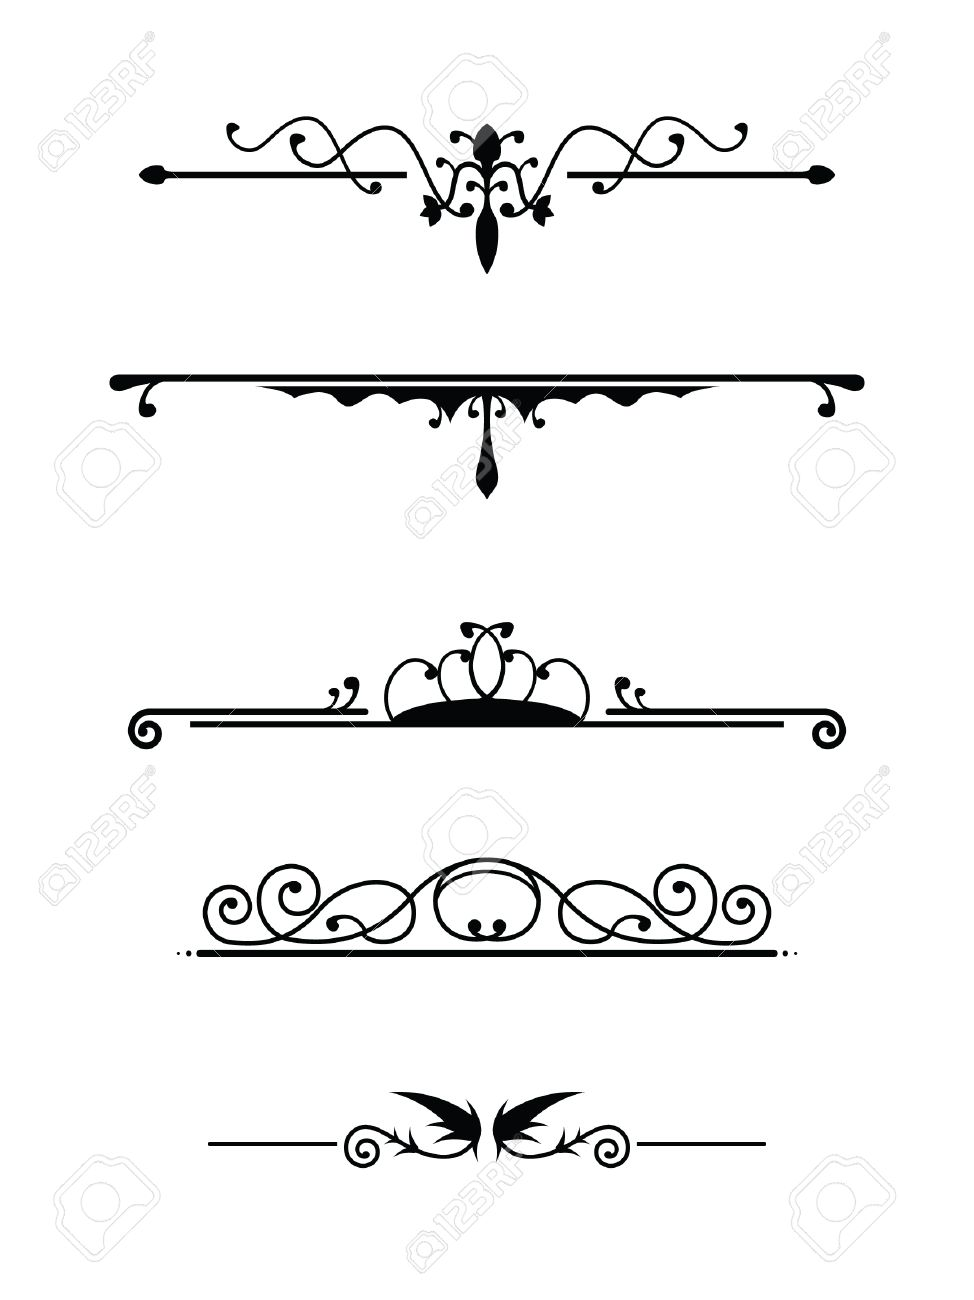 Vintage Dividers Set 2 Royalty Free Cliparts, Vectors, And Stock ...